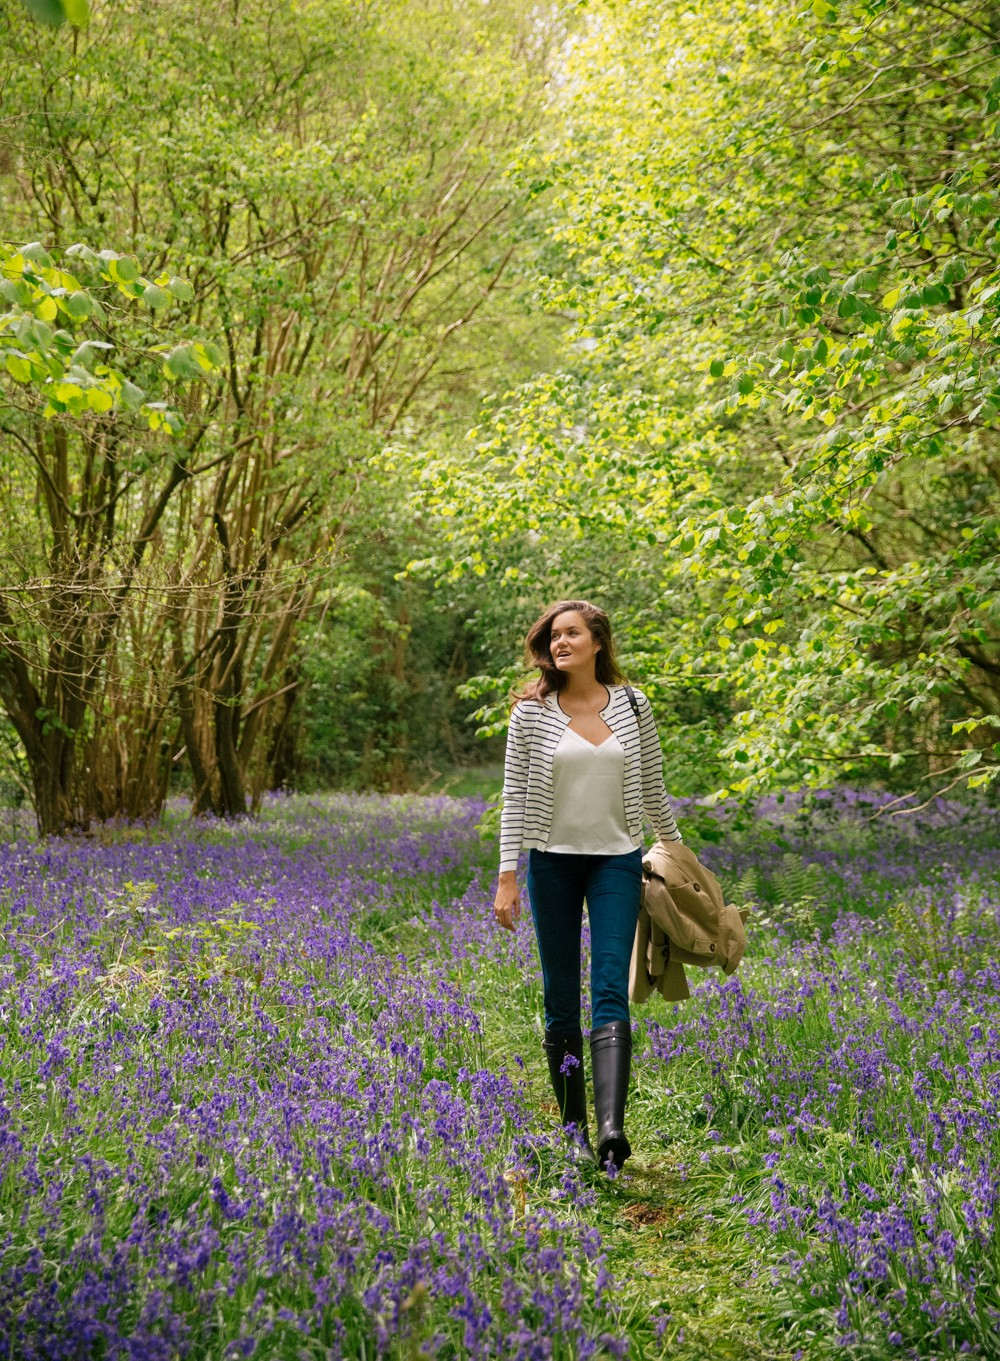 Britain's ancient bluebell woods - smell even better than they look!